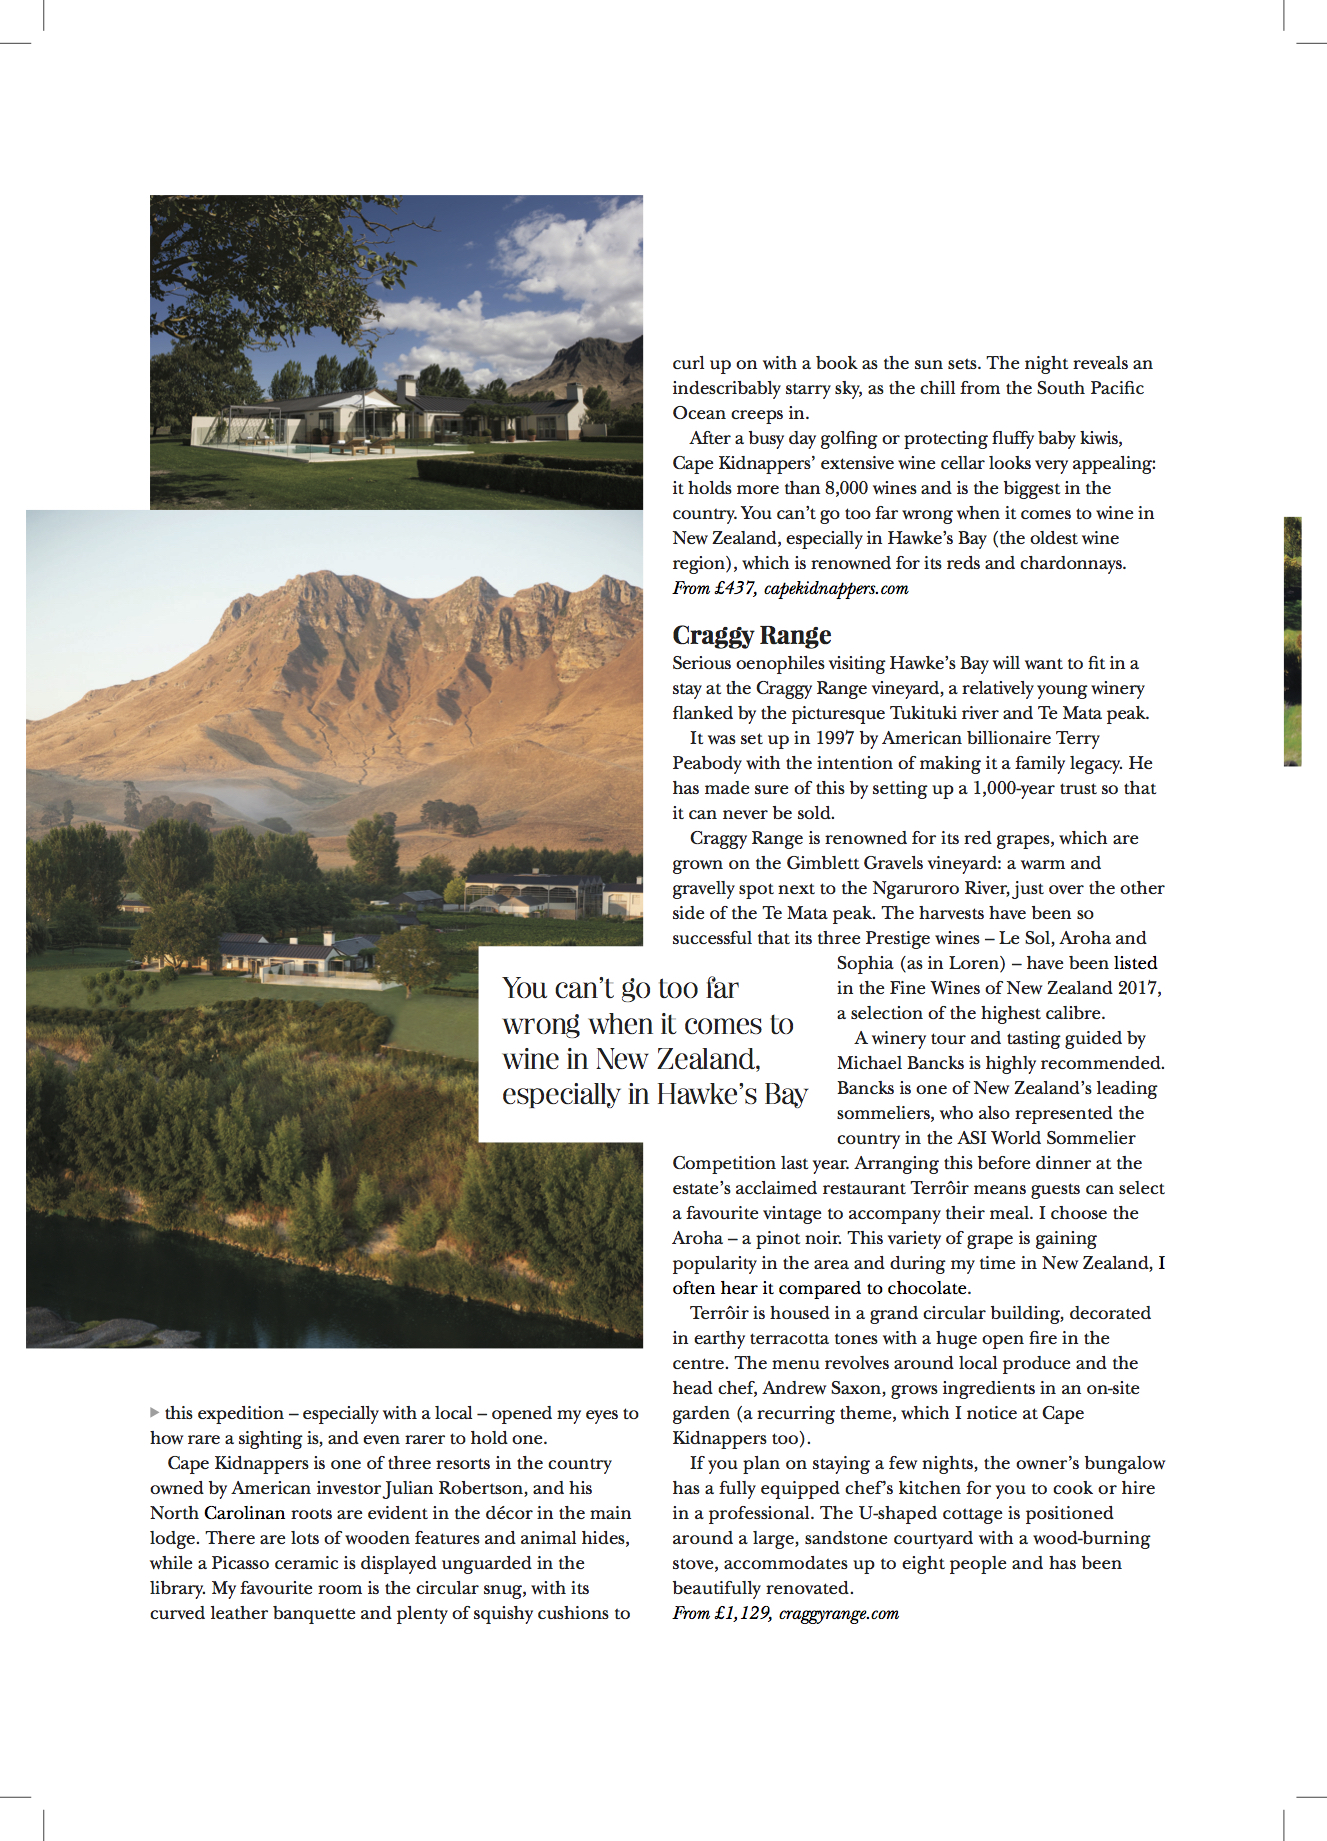 092 MAYF AUG 17 - TRAVEL - FEATURE - NEW ZEALAND.jpg